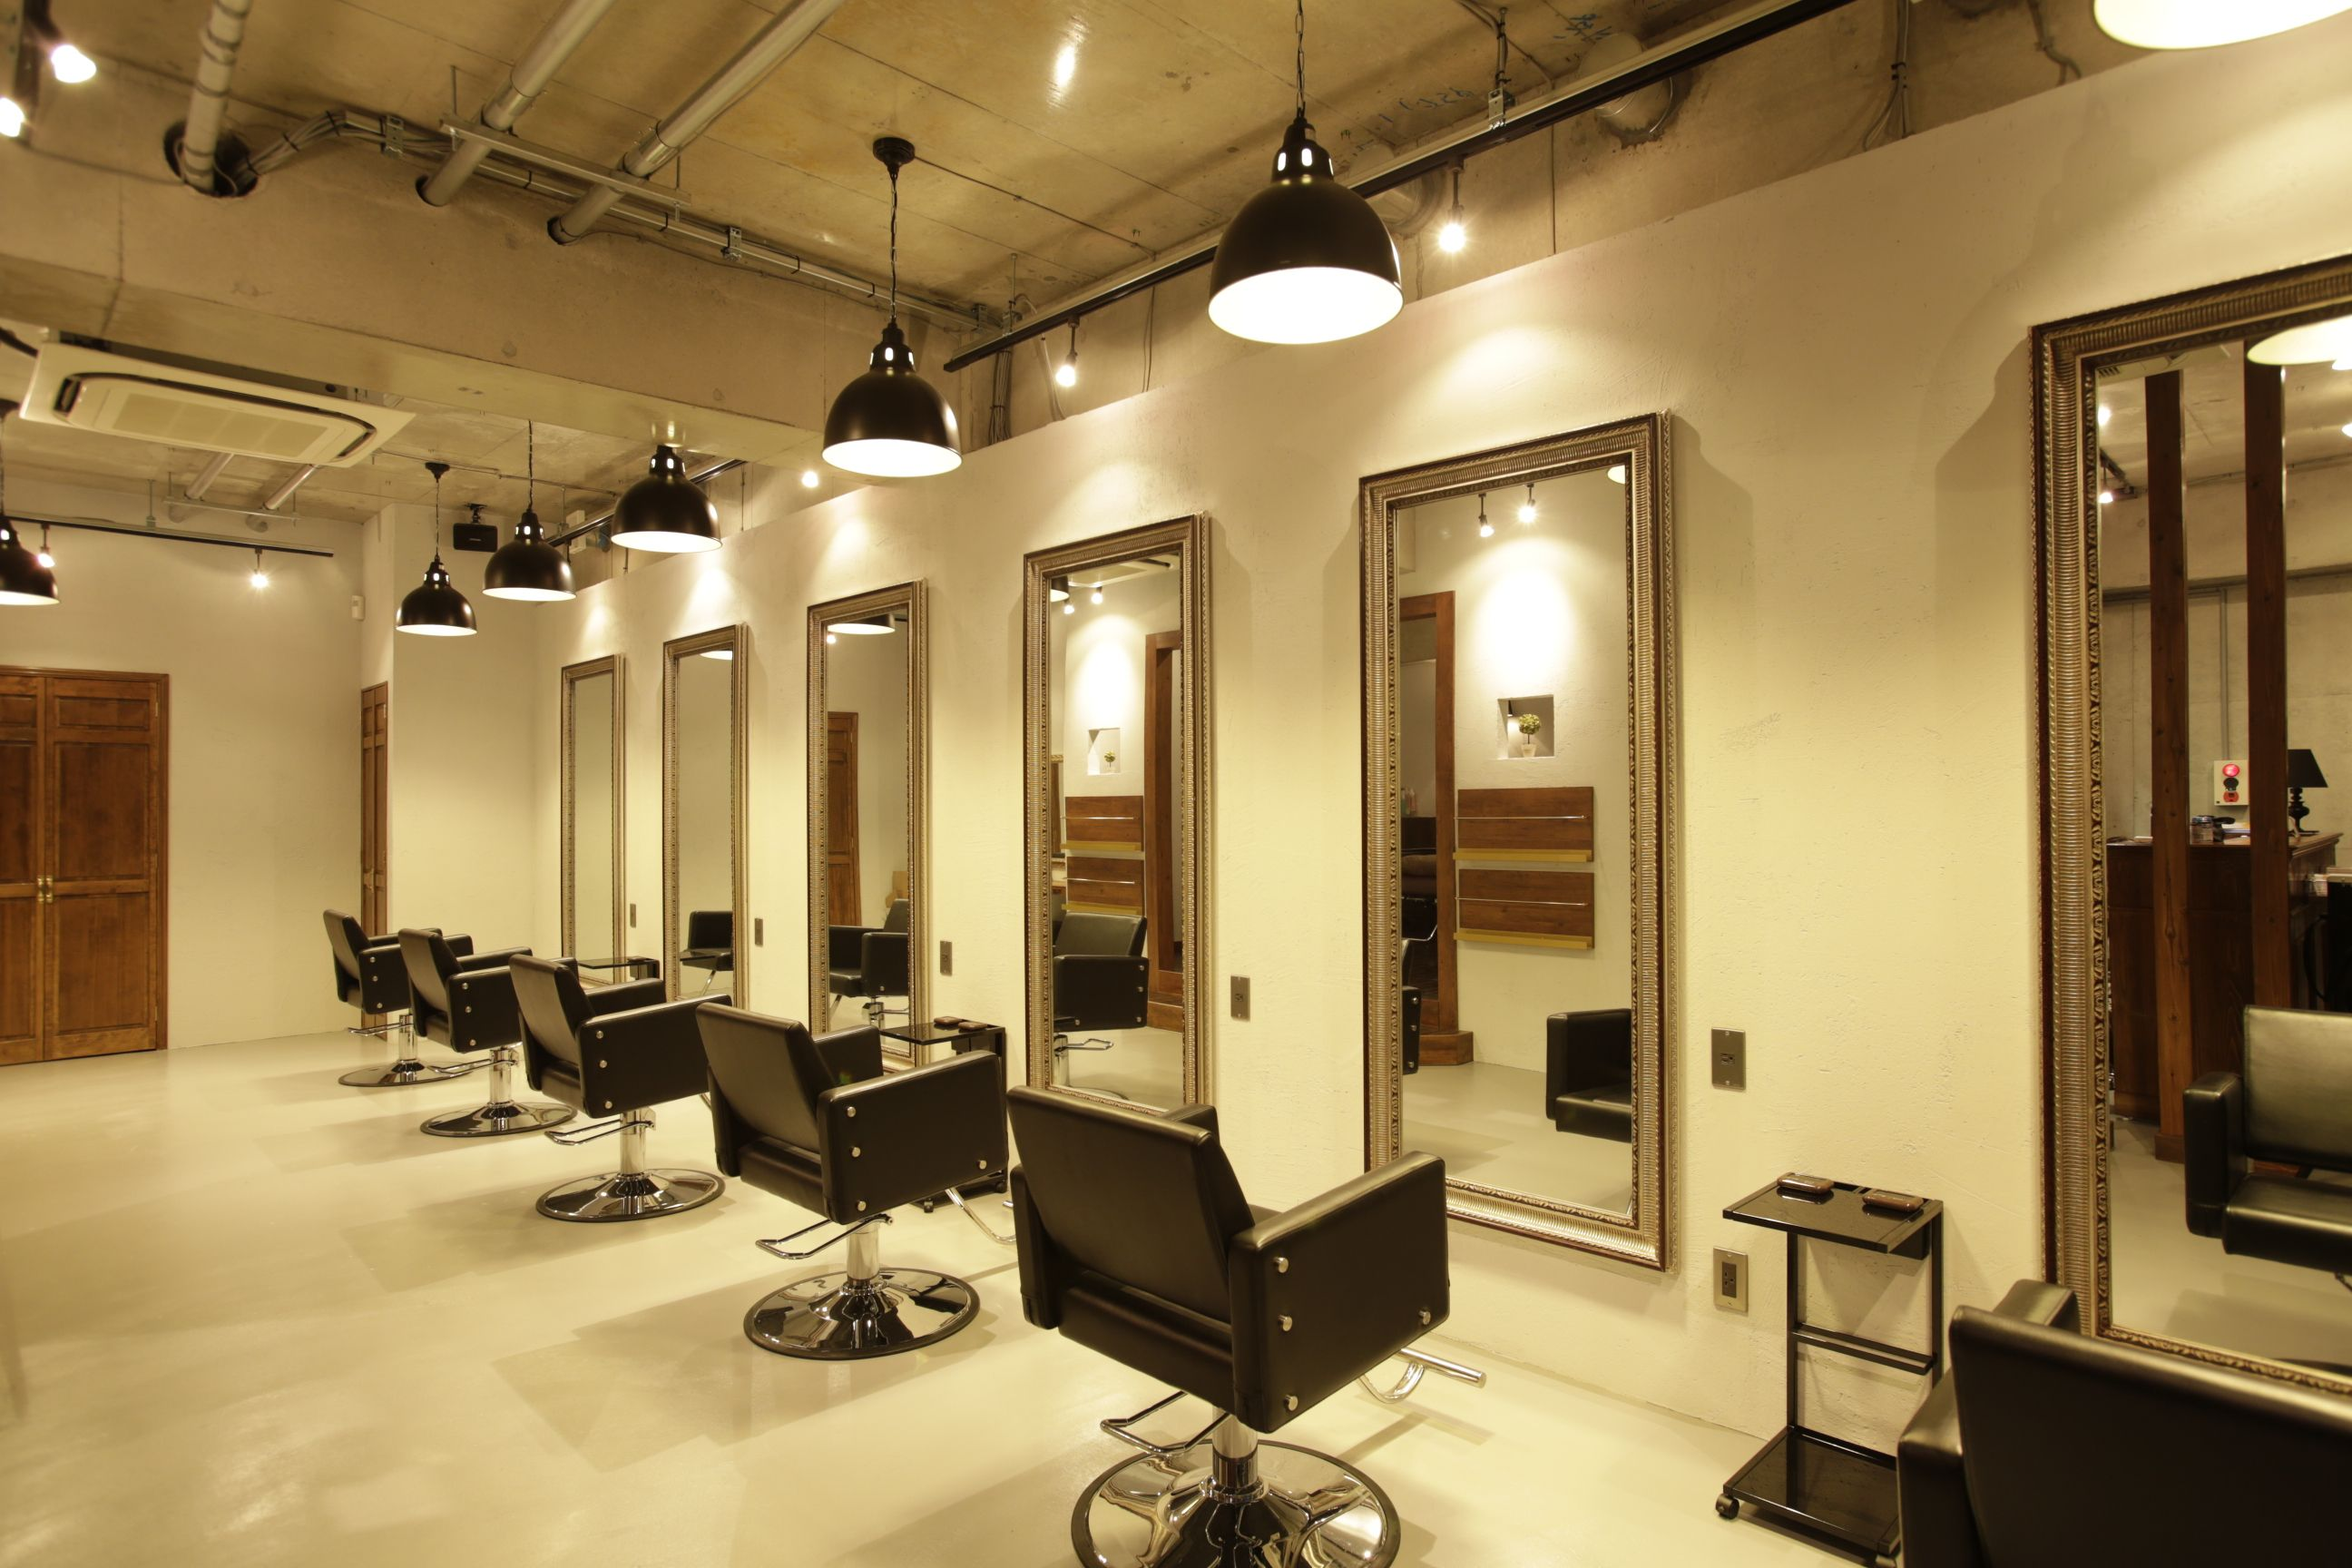 Beauty salon interior design ideas hair space for Hair salons designs ideas